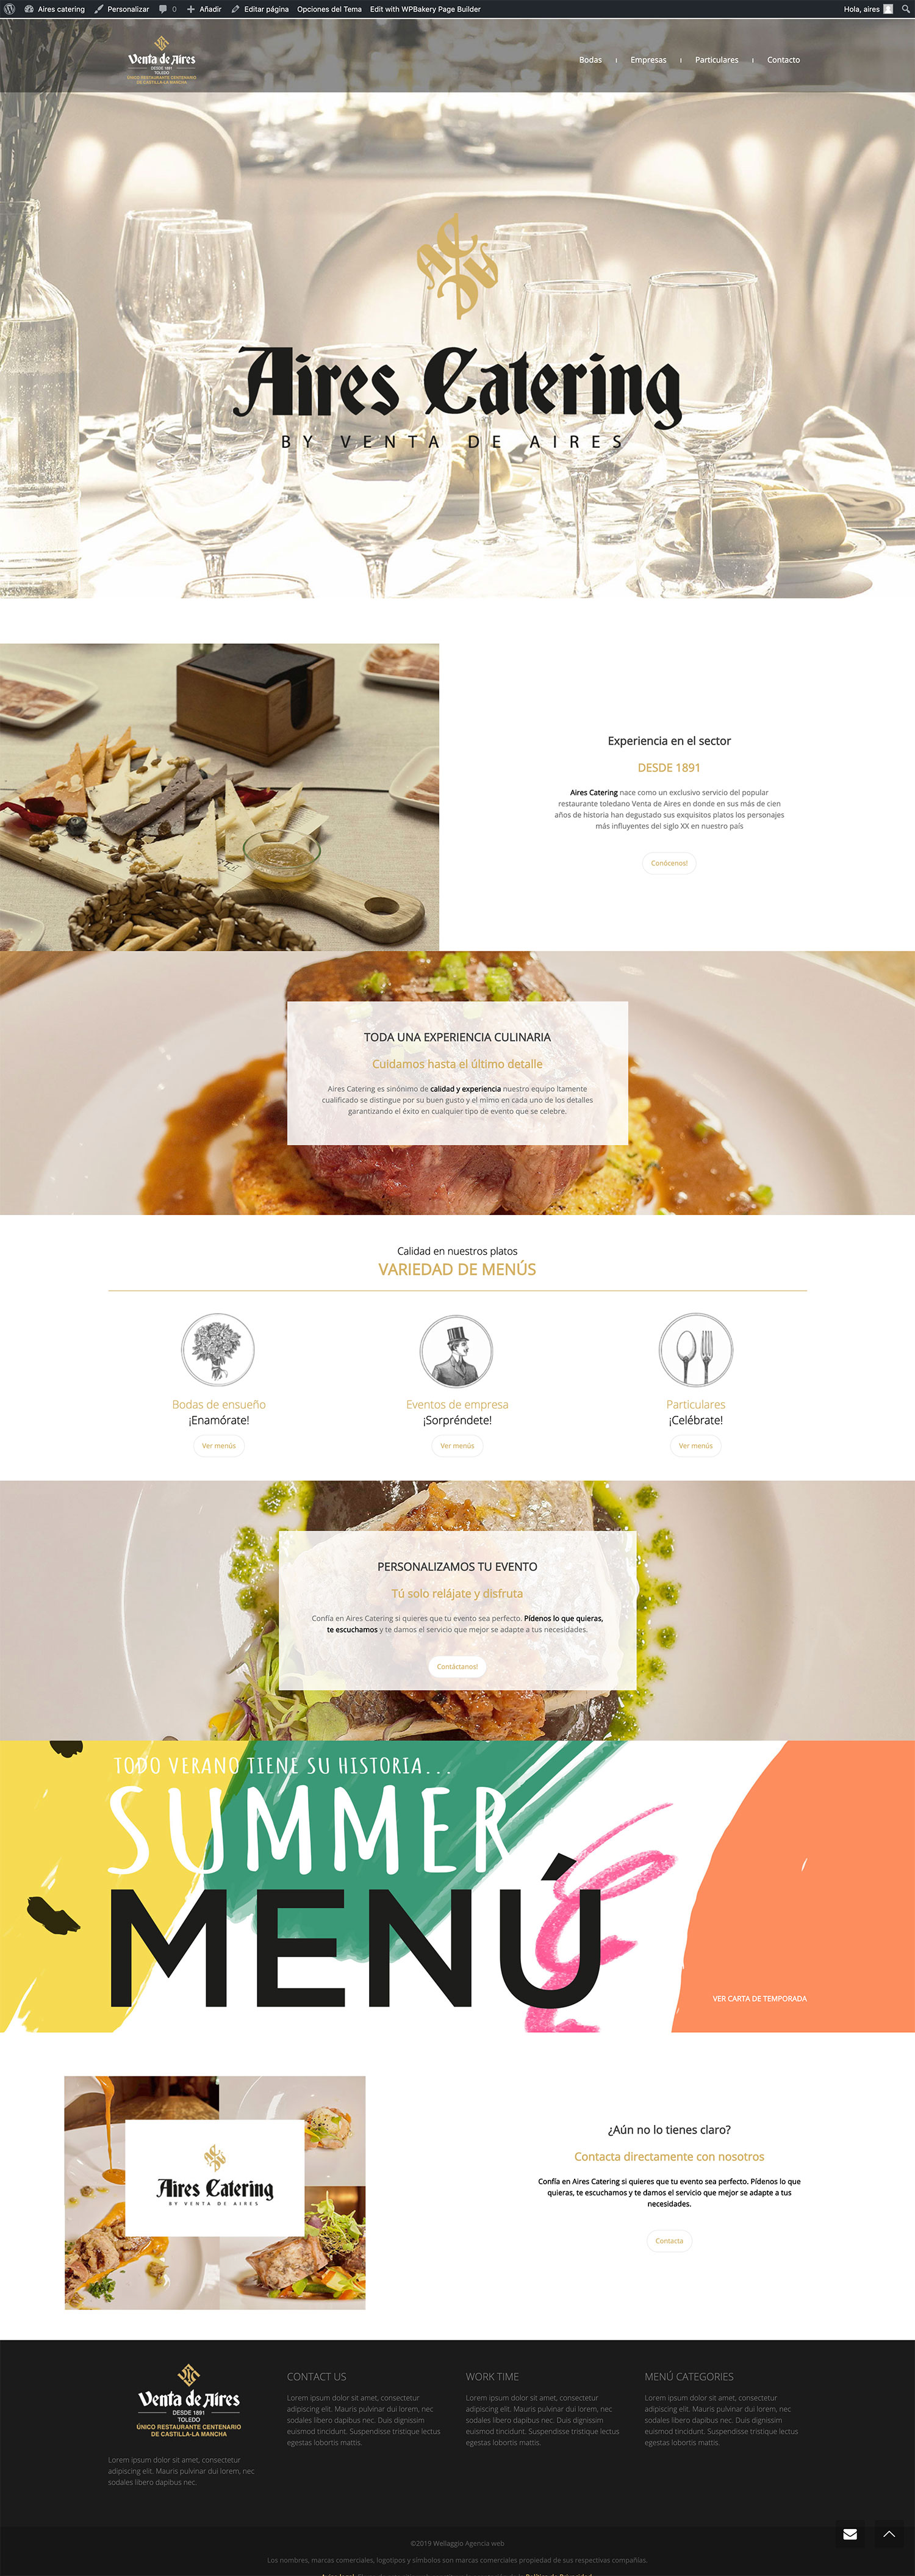 landing-page-aires-catering